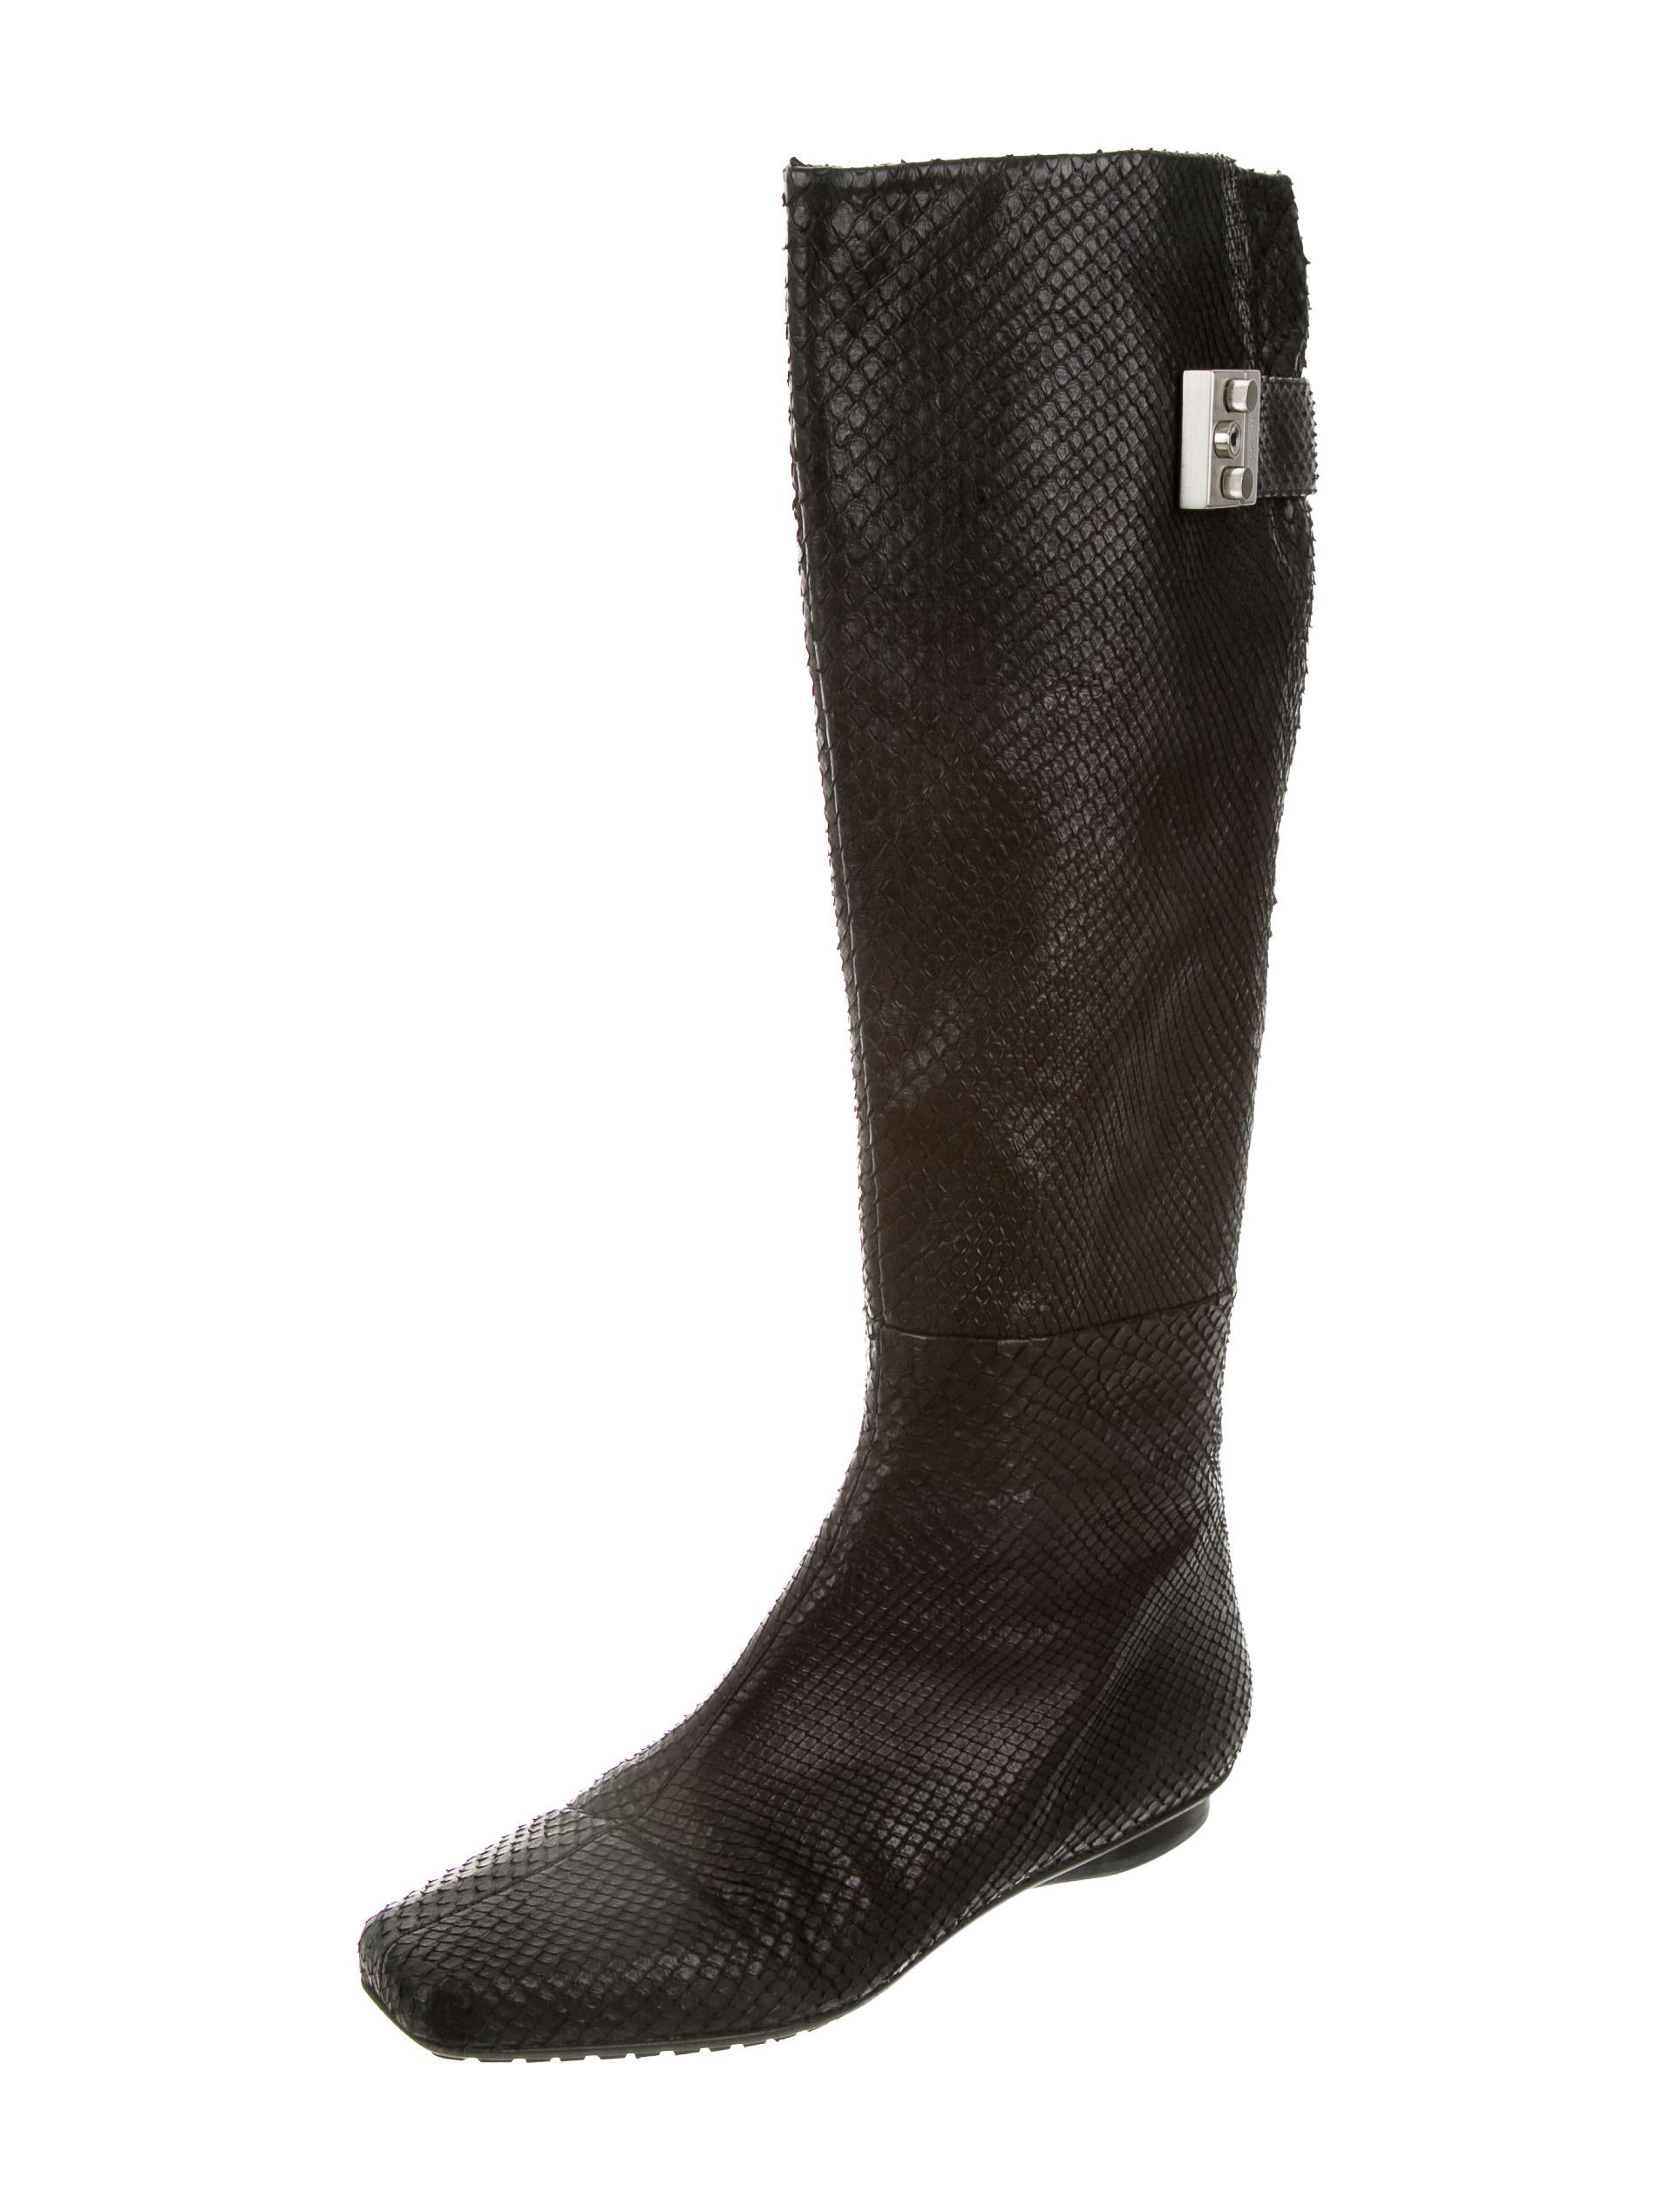 calvin klein collection snakeskin knee high boots shoes